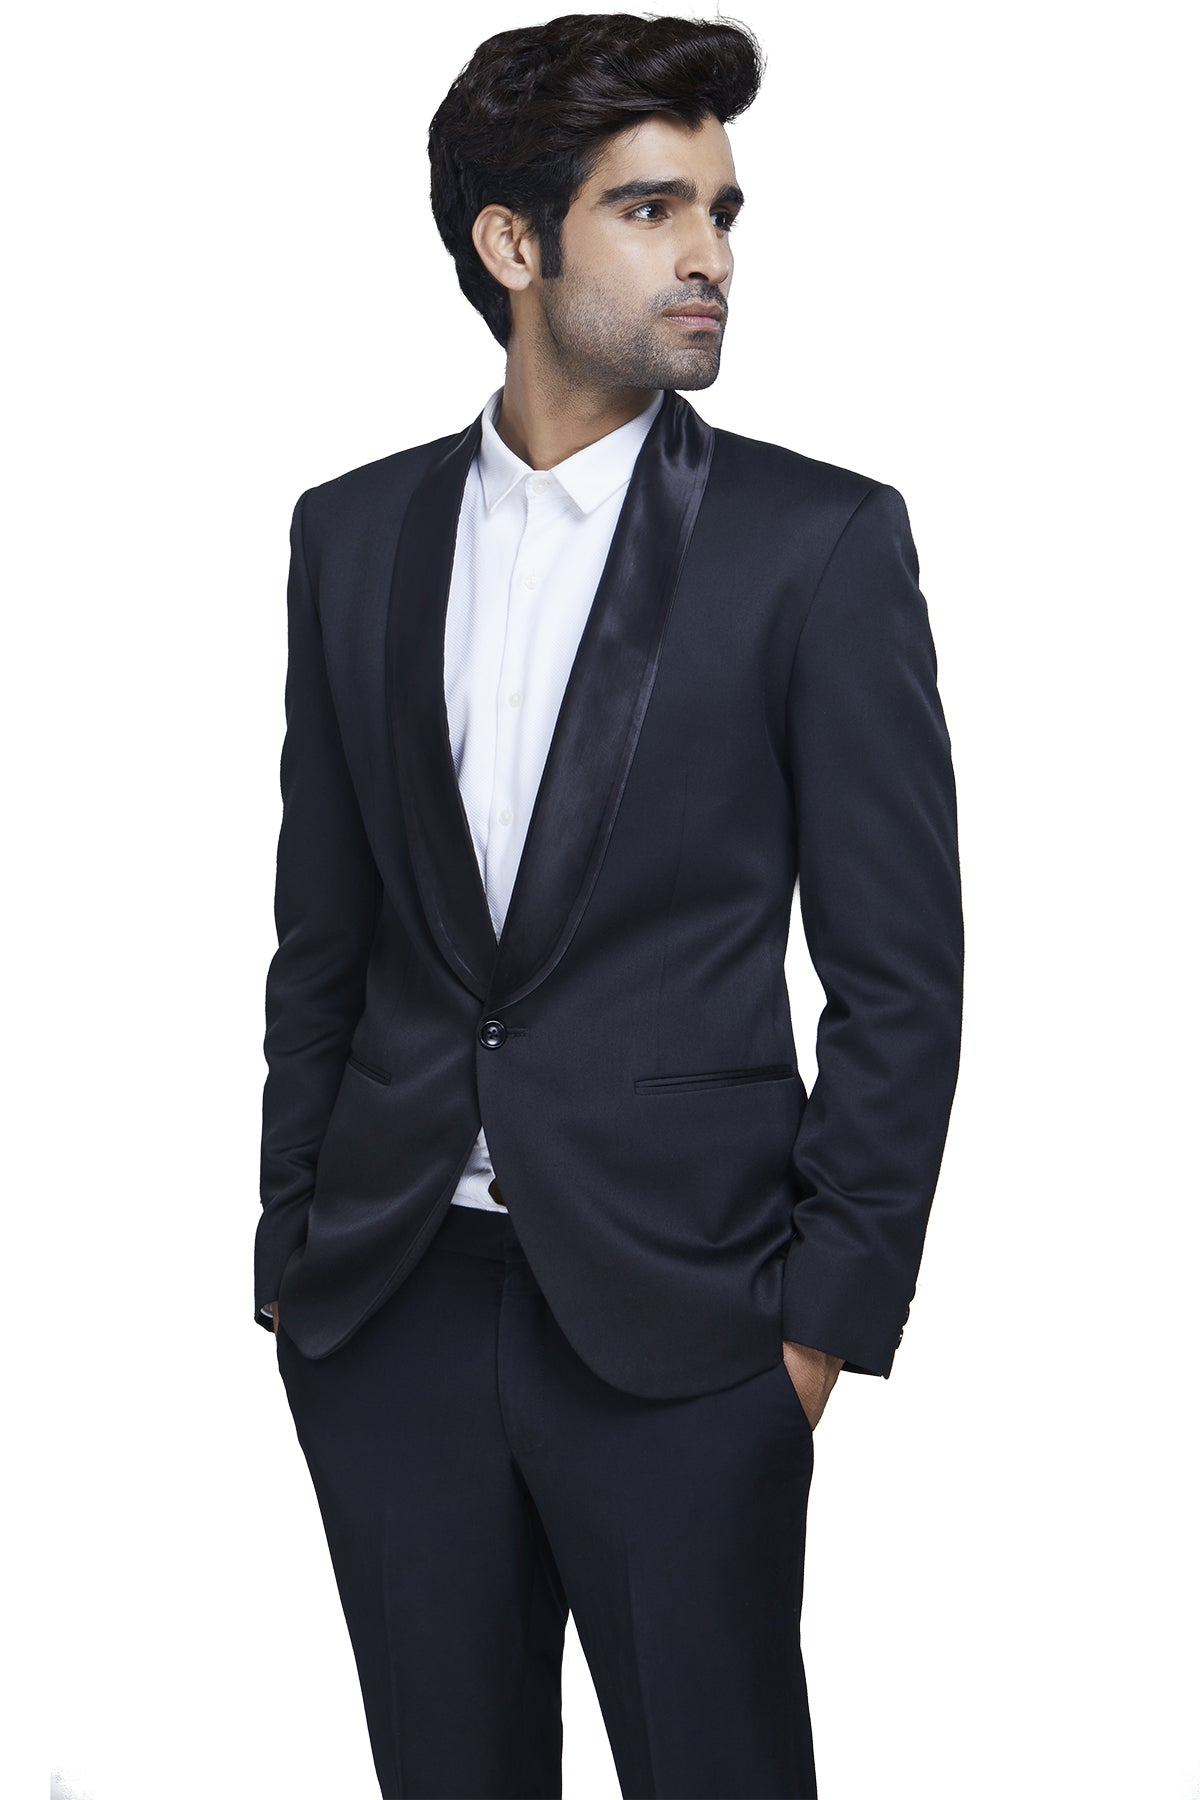 Black dinner suit with satin rounded lapels